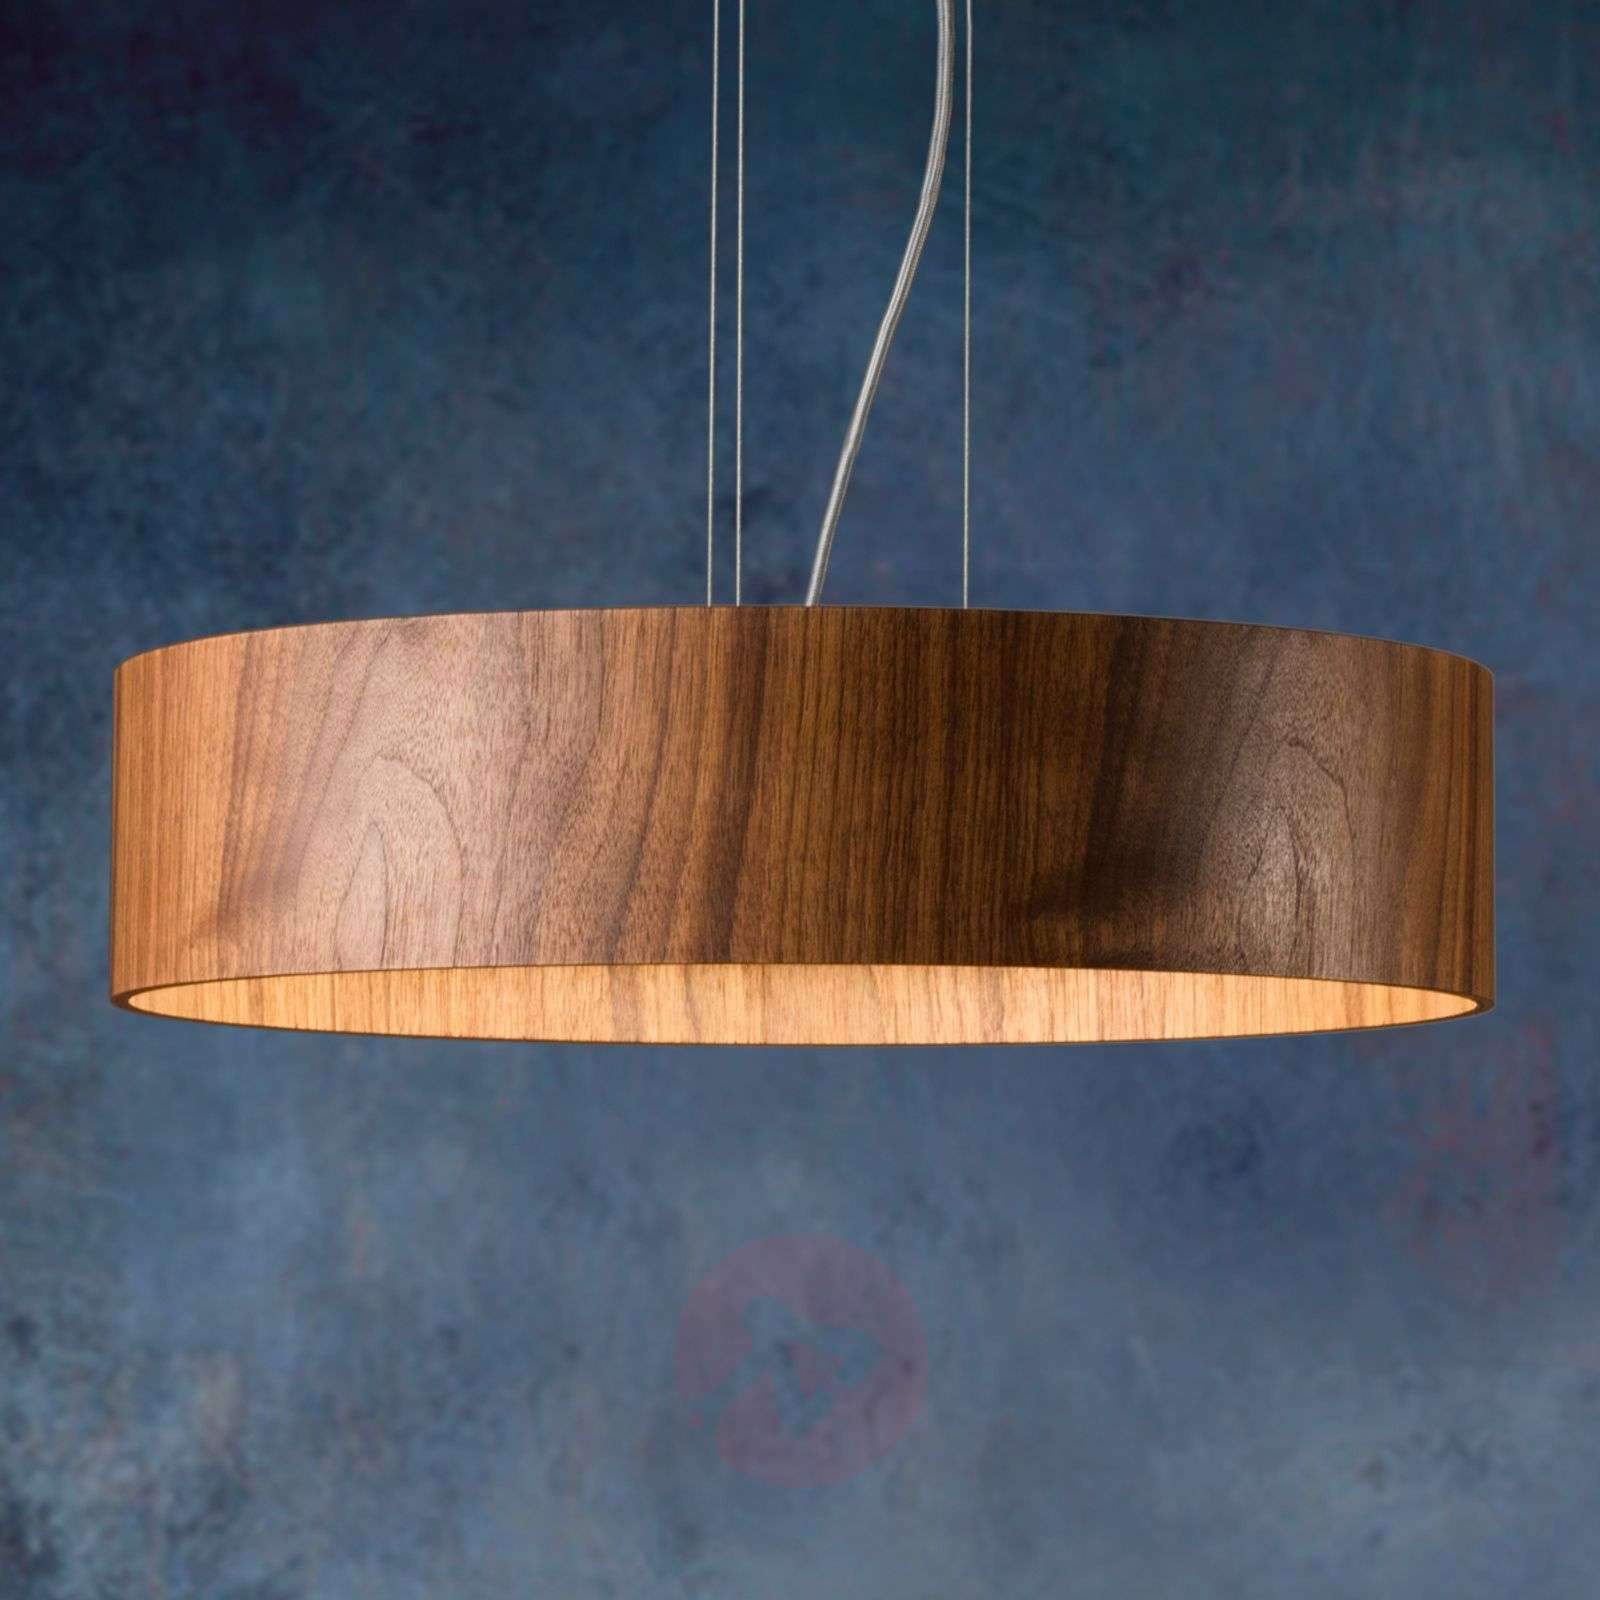 Walnut hanging light Lara Wood with LEDs-2600525-01